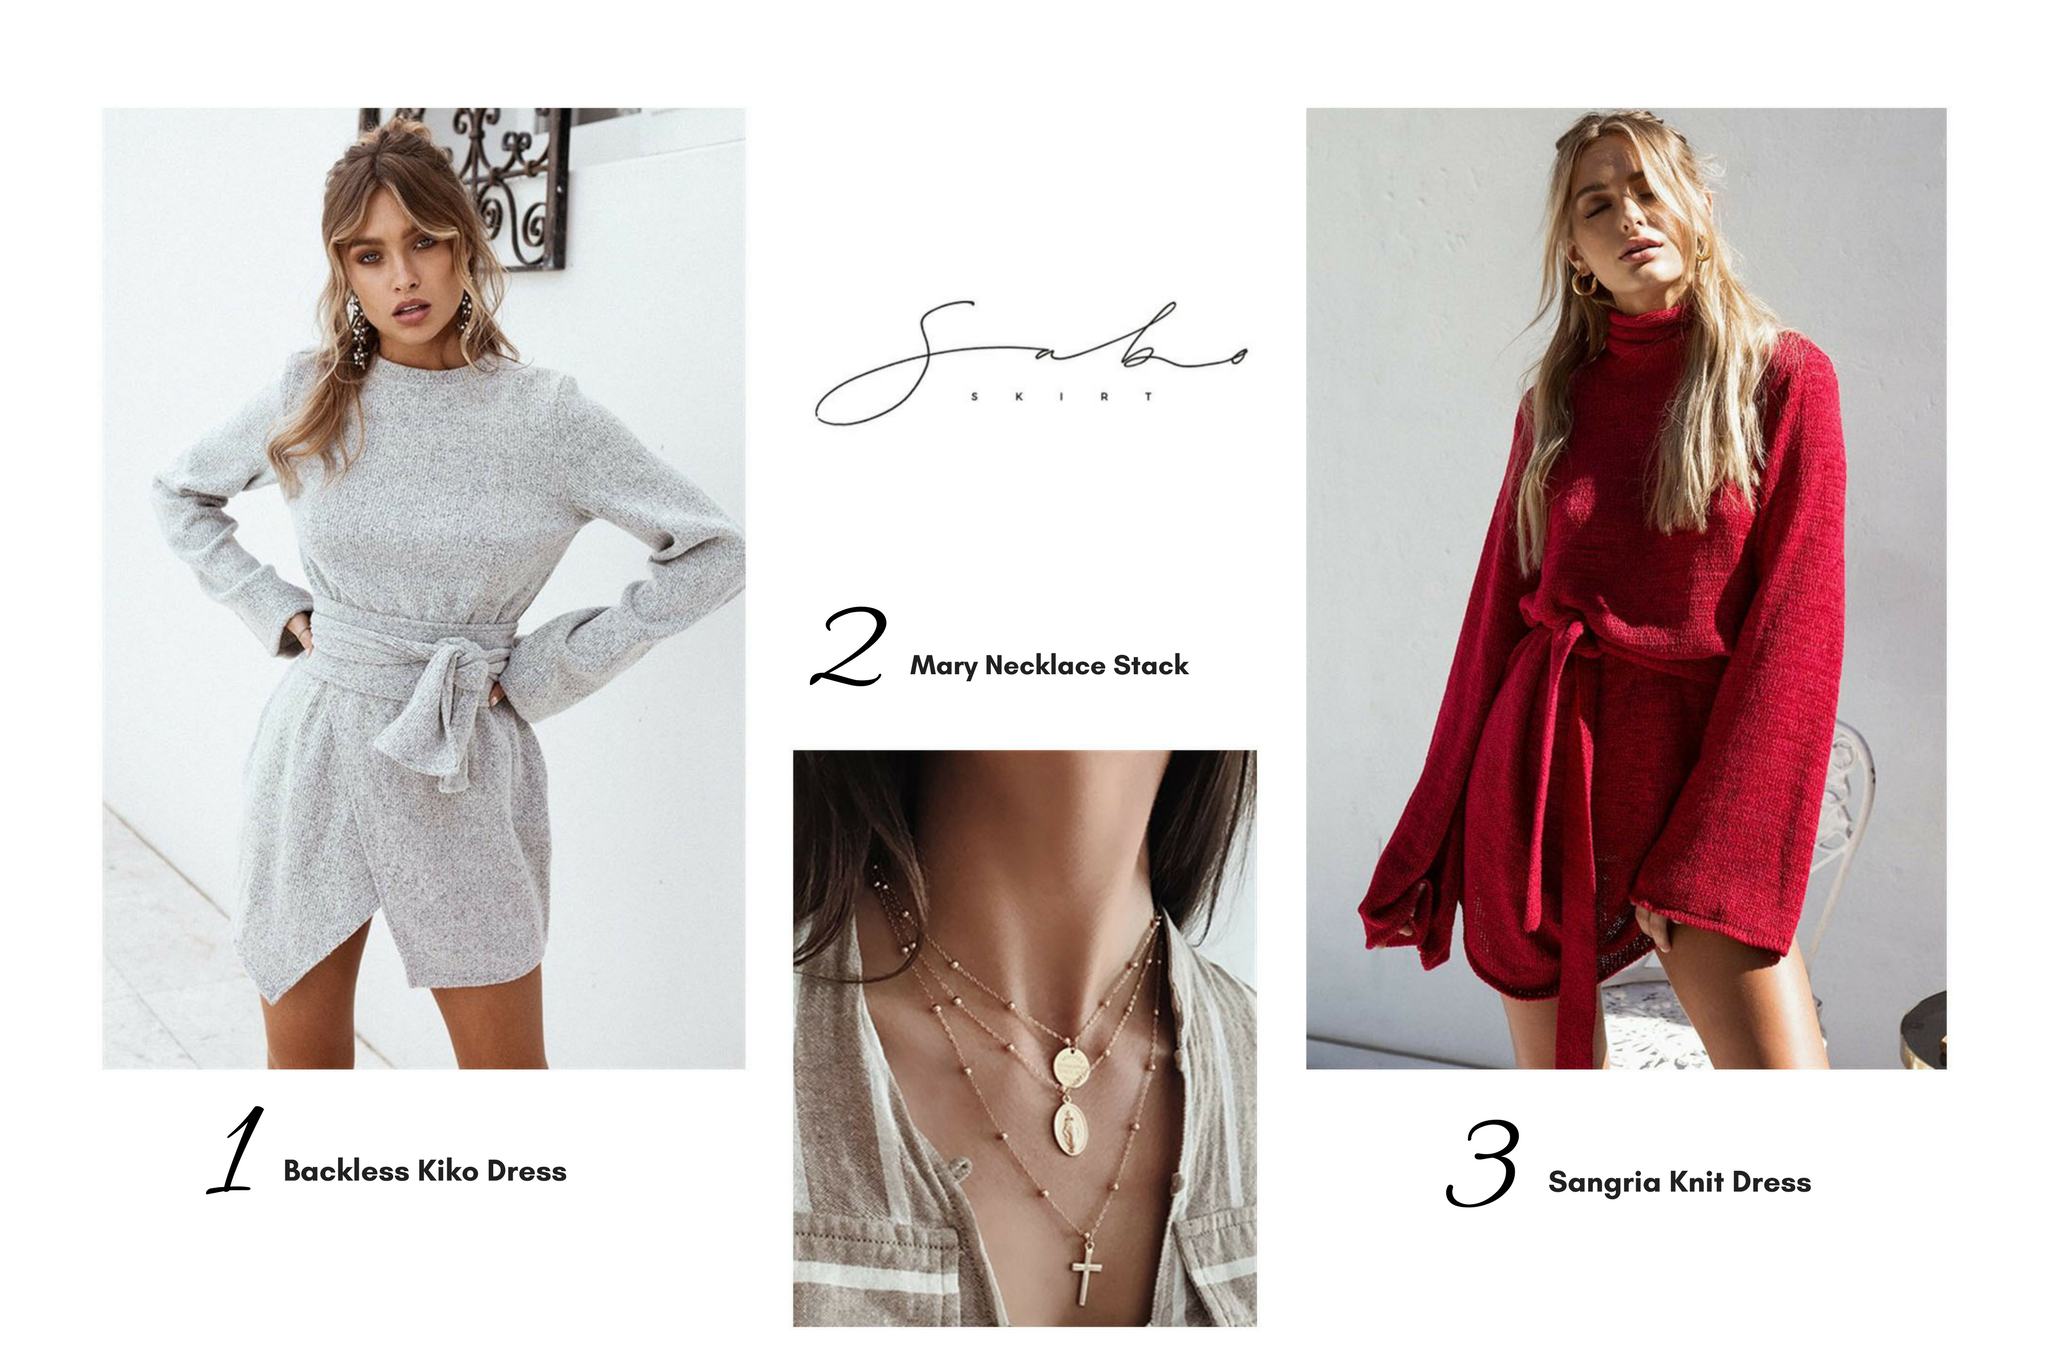 saboskirt outfitpost ootd outfit ideas february favorites clothing collage fashion inspo